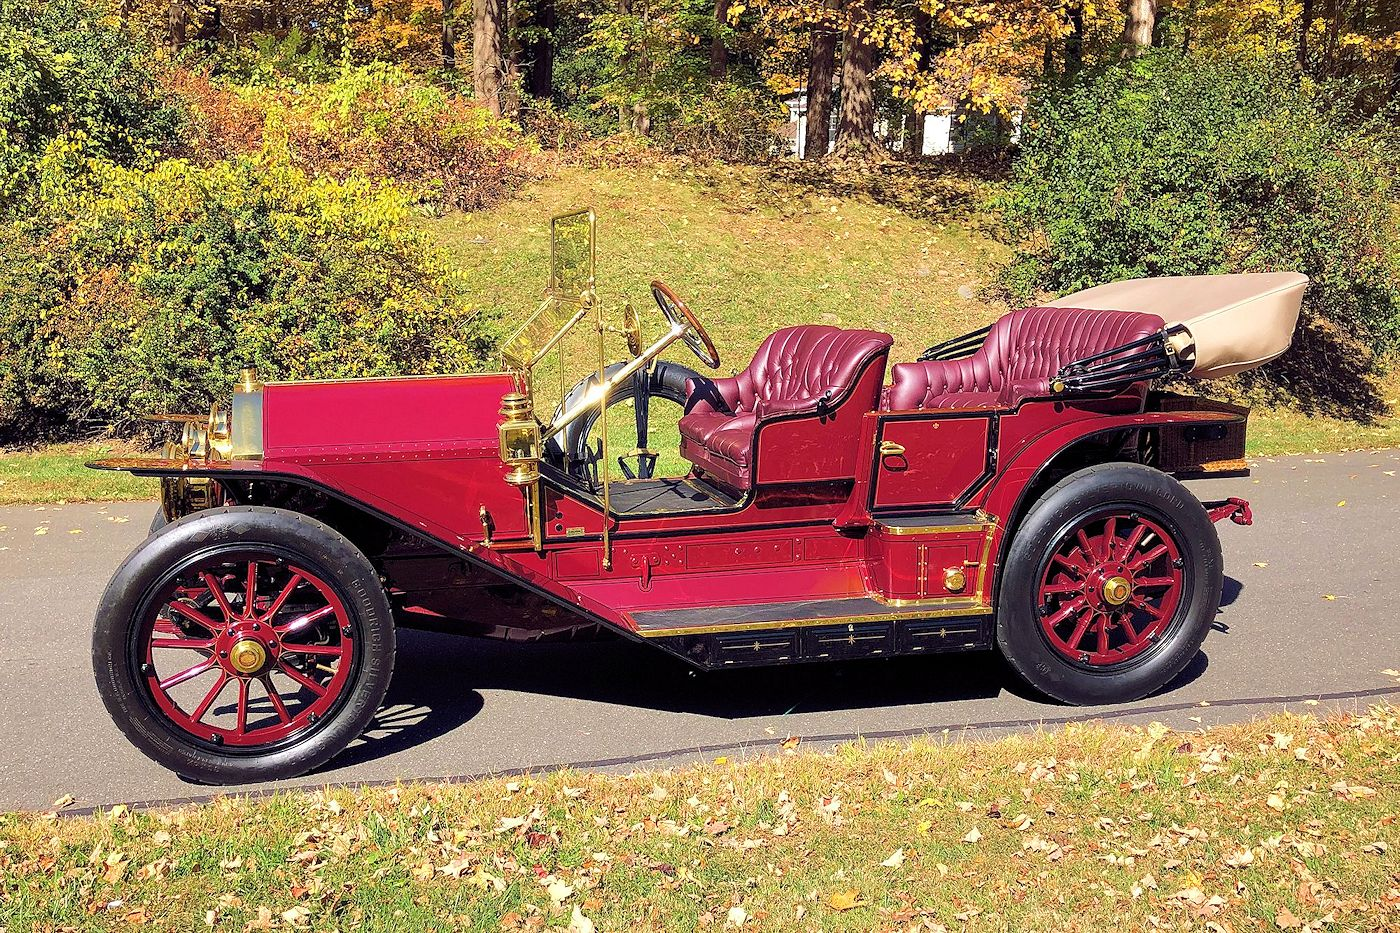 1910 Simplex Chassis #50-10351